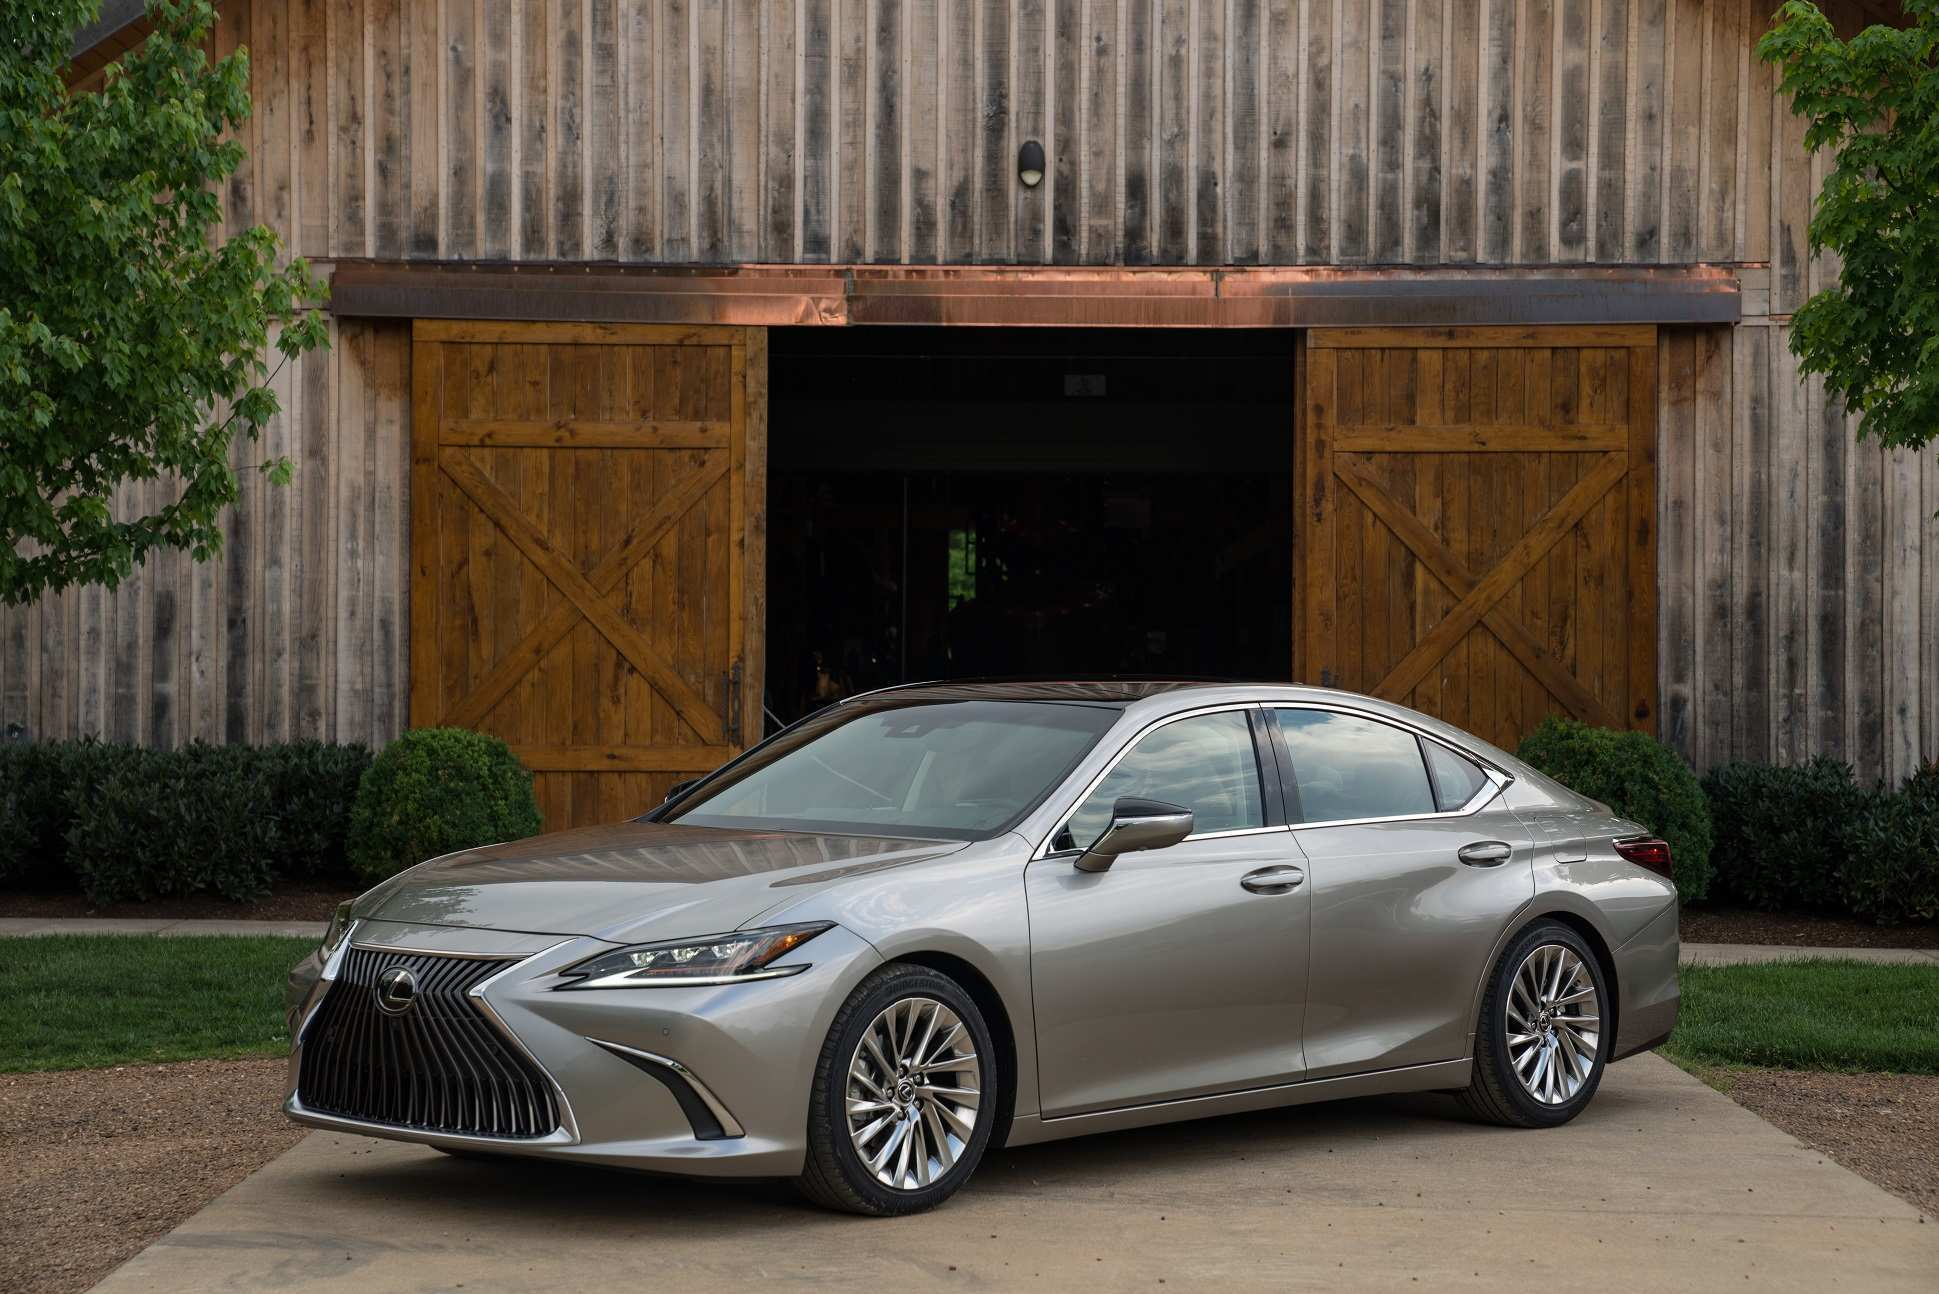 80 All New 2019 Lexus Is Redesign with 2019 Lexus Is